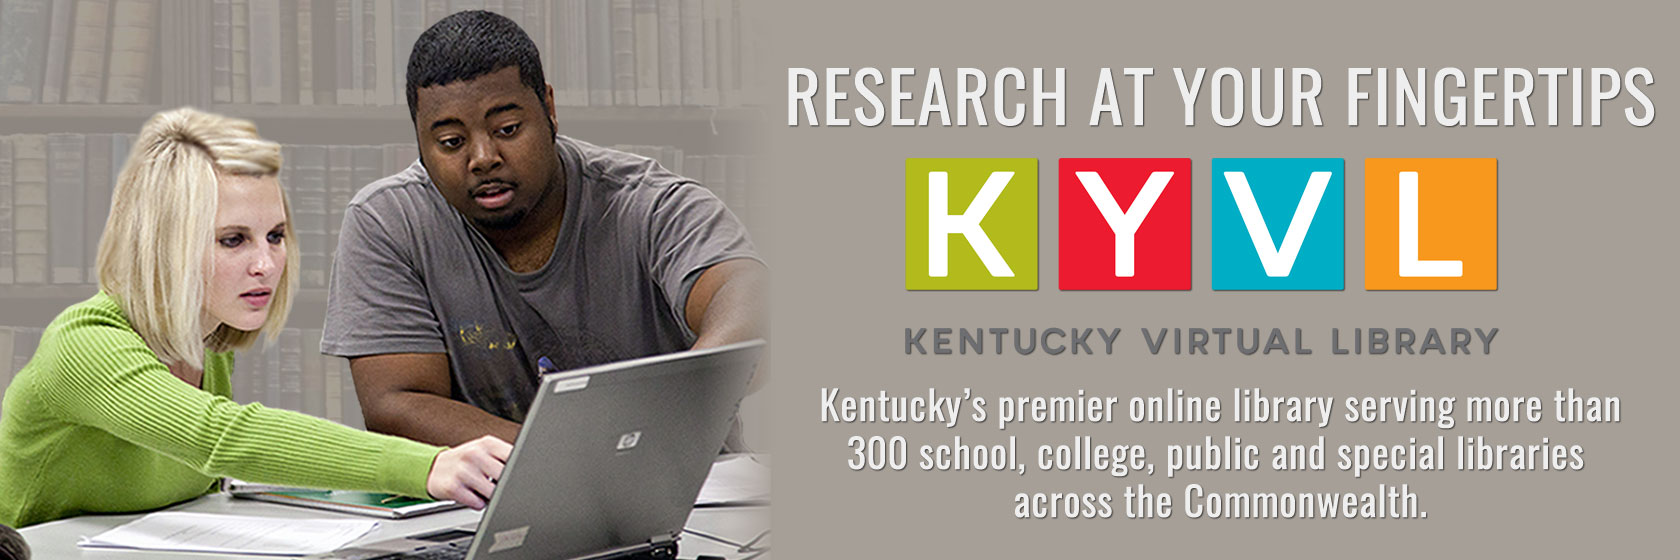 Research the topics you need at KYVL.